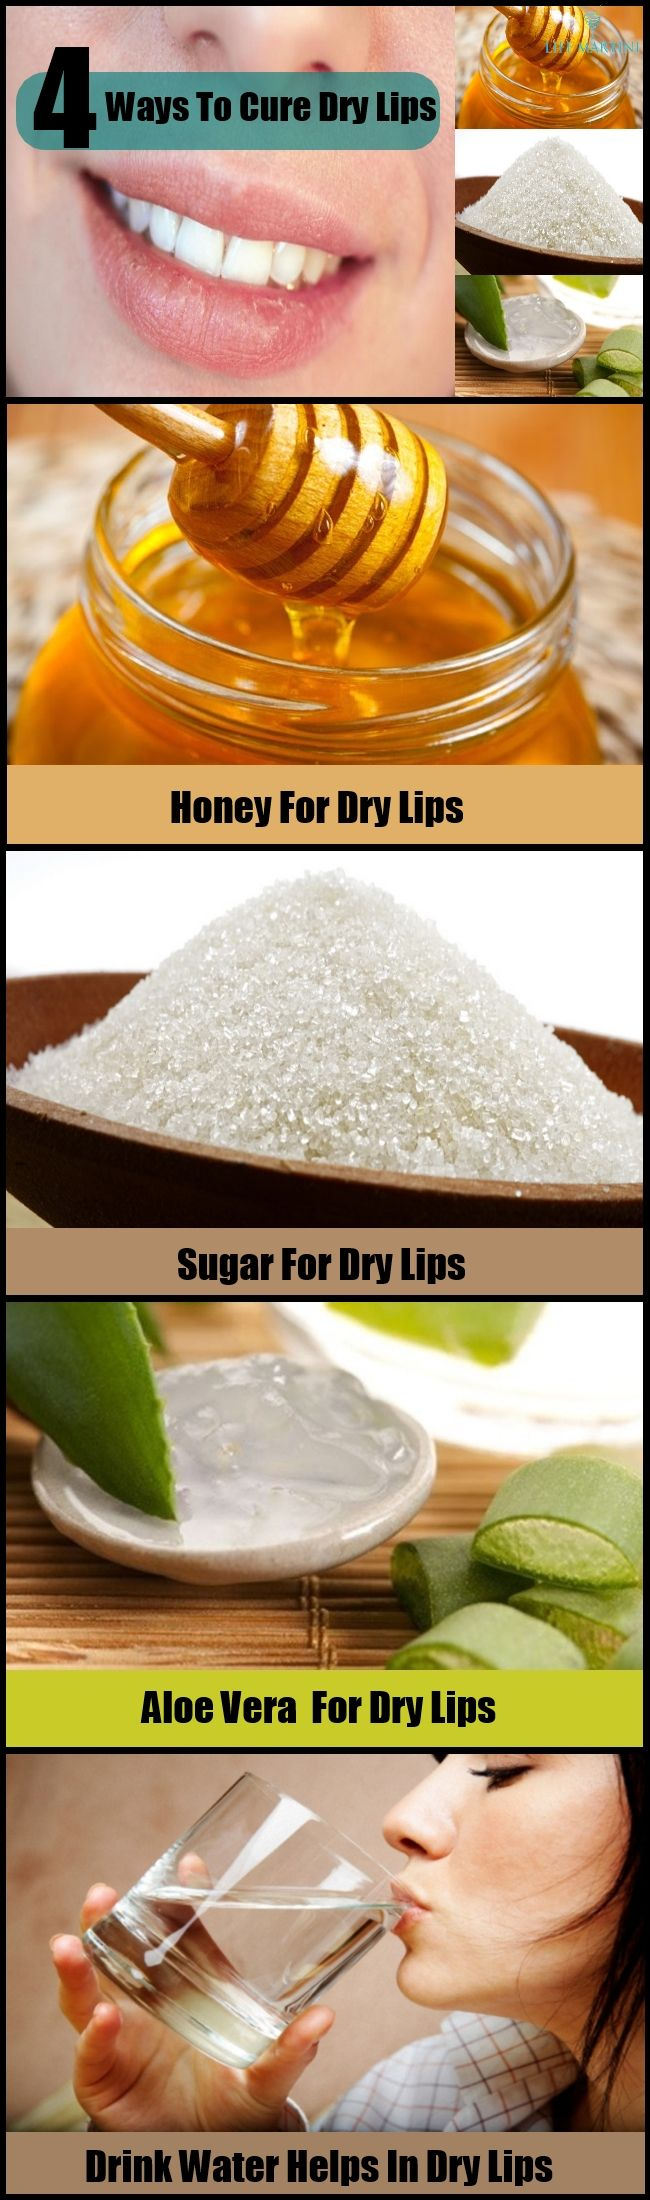 How To Cure Dry Lips